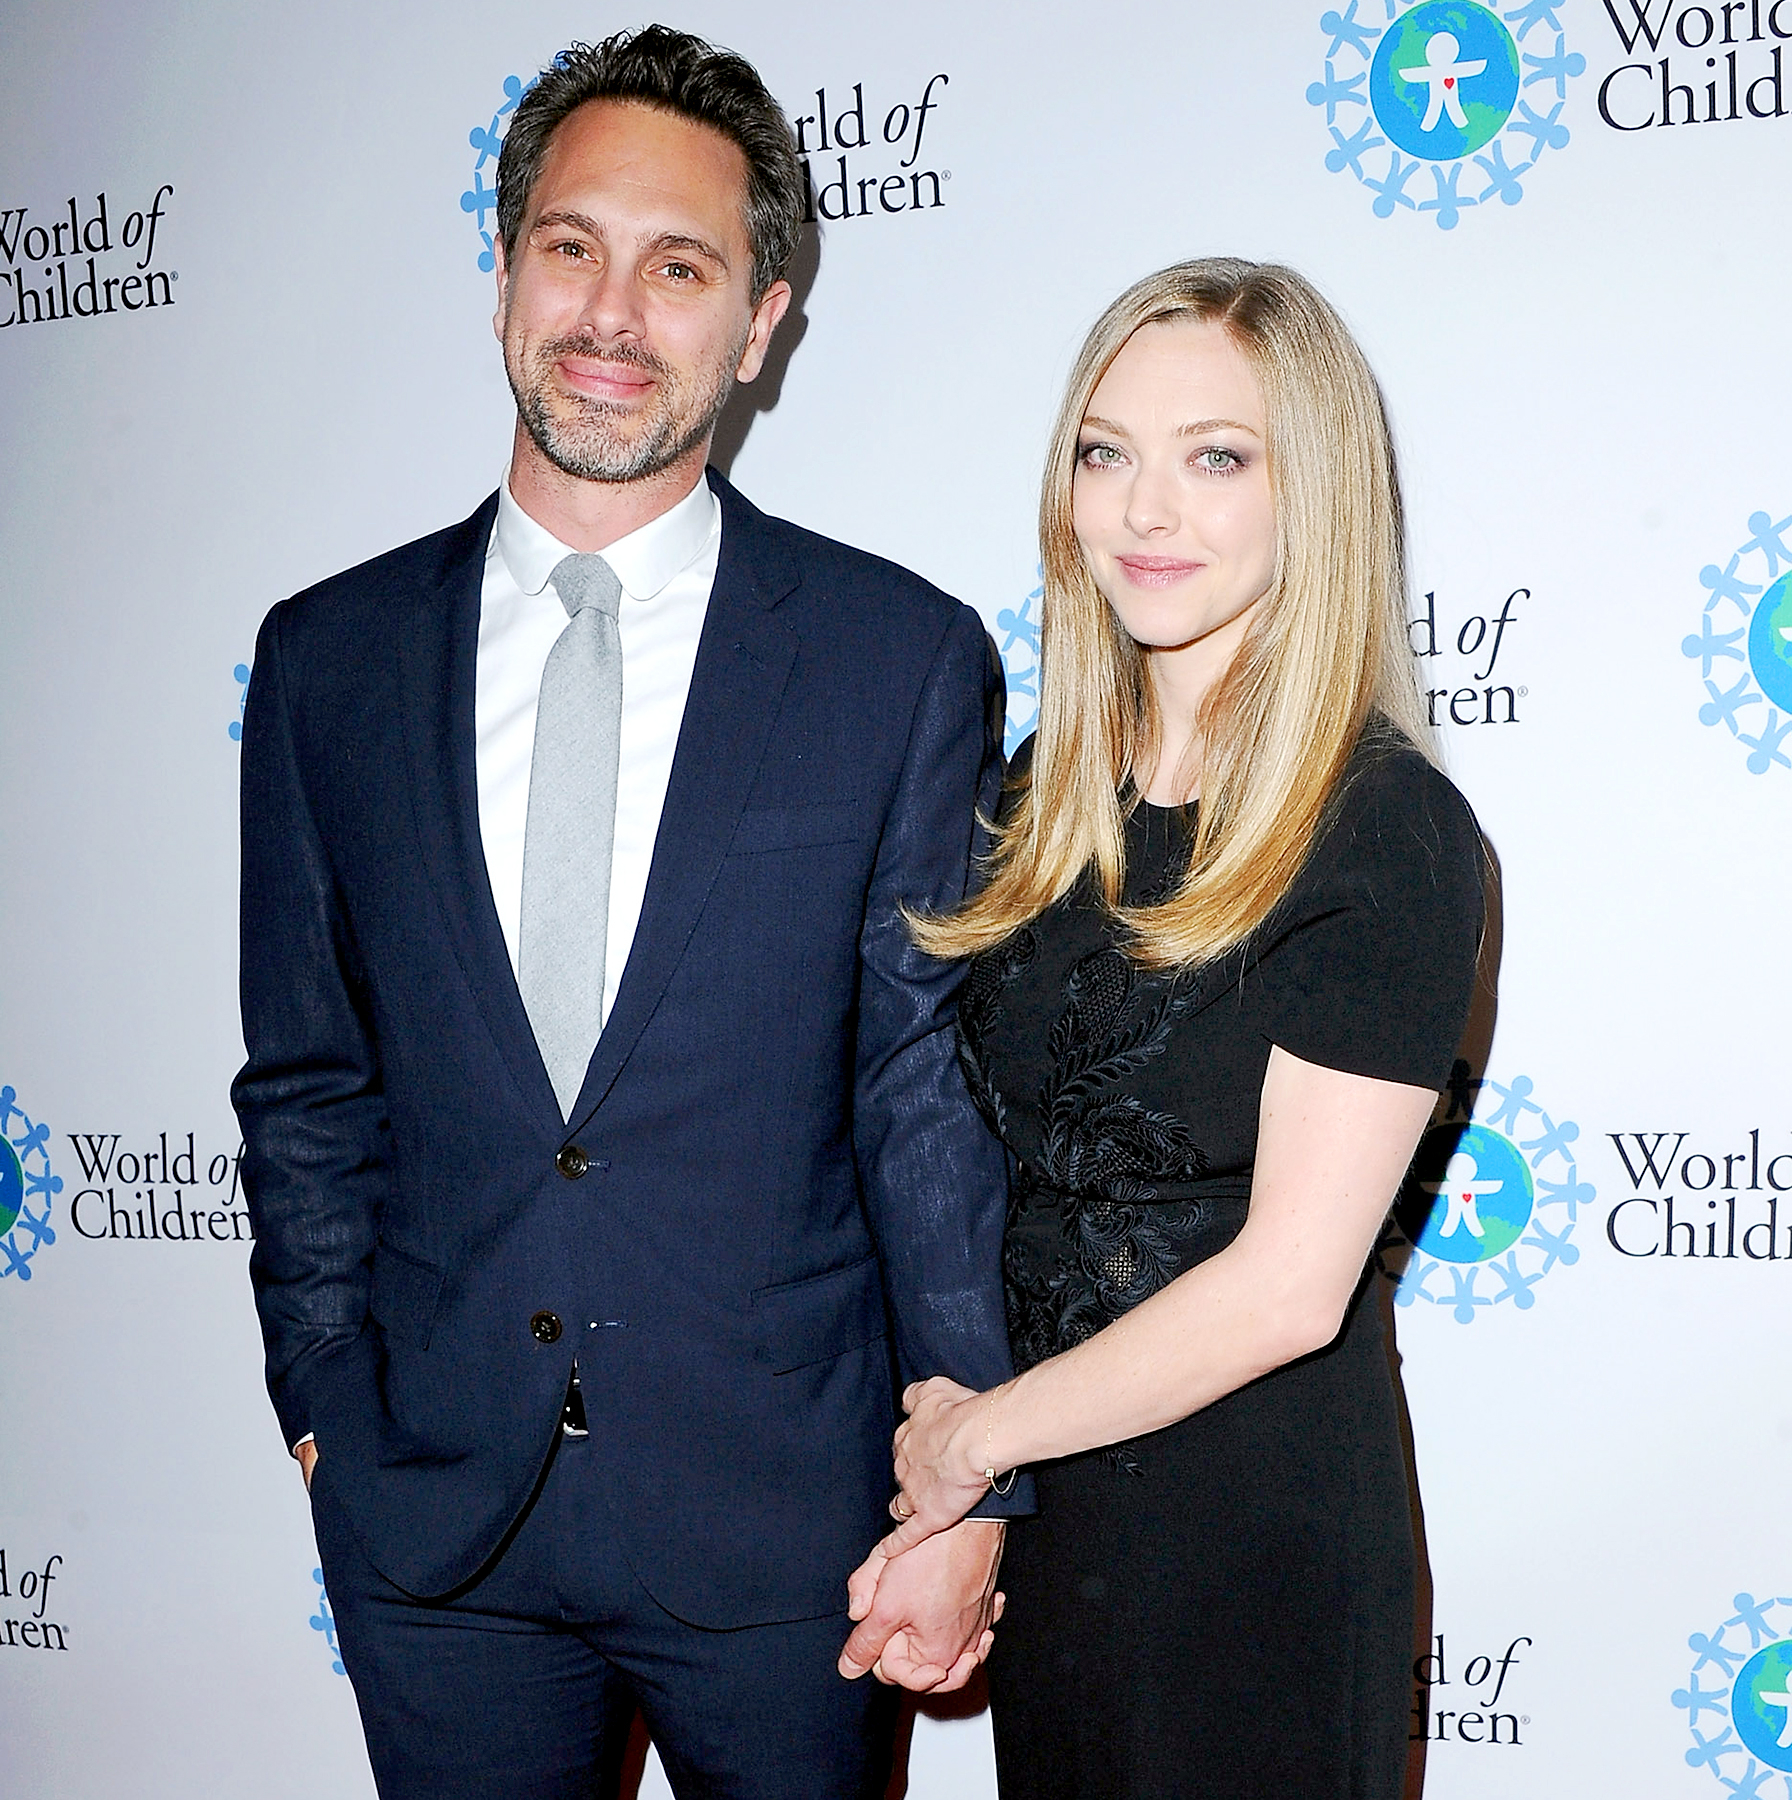 Thomas Sadoski and Amanda Seyfried arrive at the 2017 World Of Children Hero Awards at Montage Beverly Hills on April 19, 2017 in Beverly Hills, California.